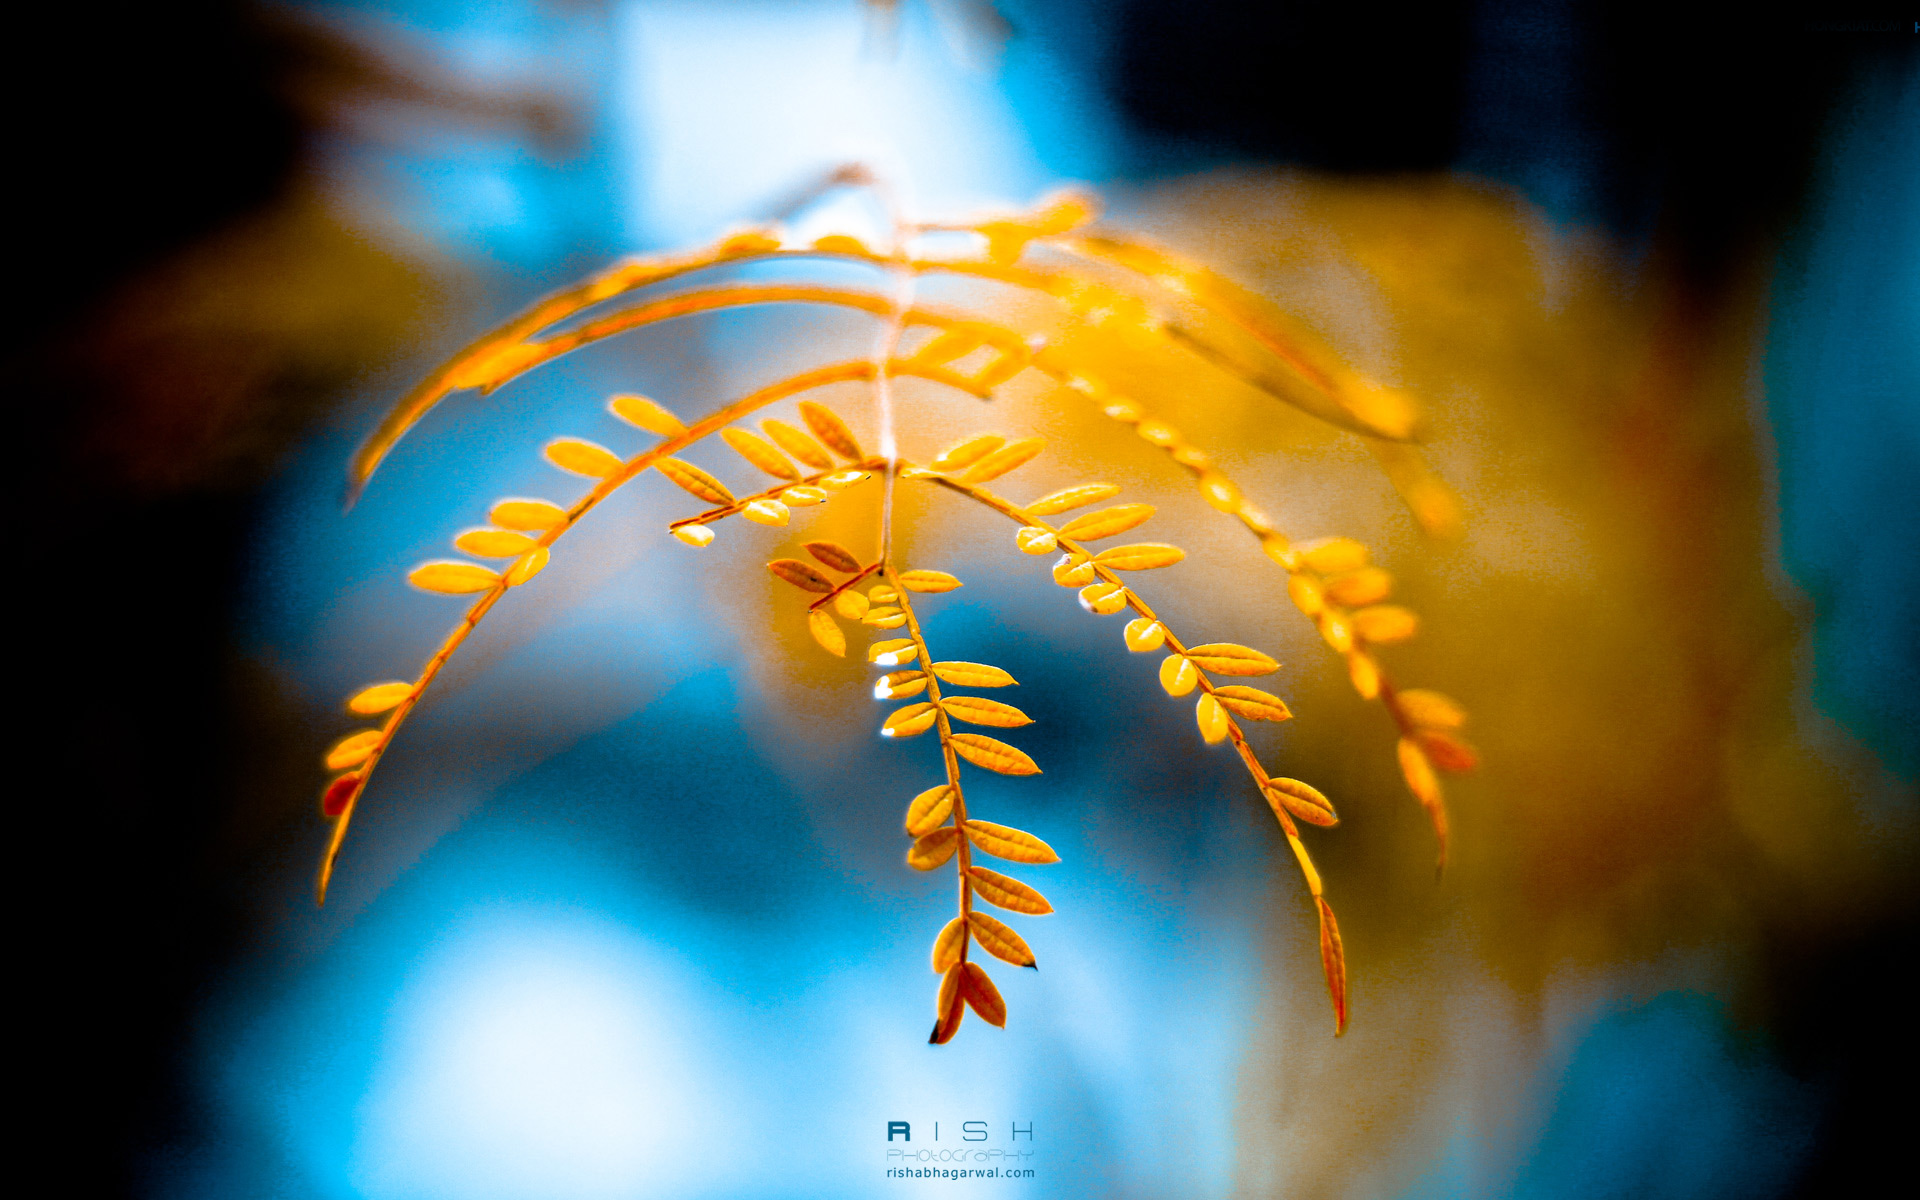 Golden Foliage Wallpaper - Golden Foliage Wallpaper